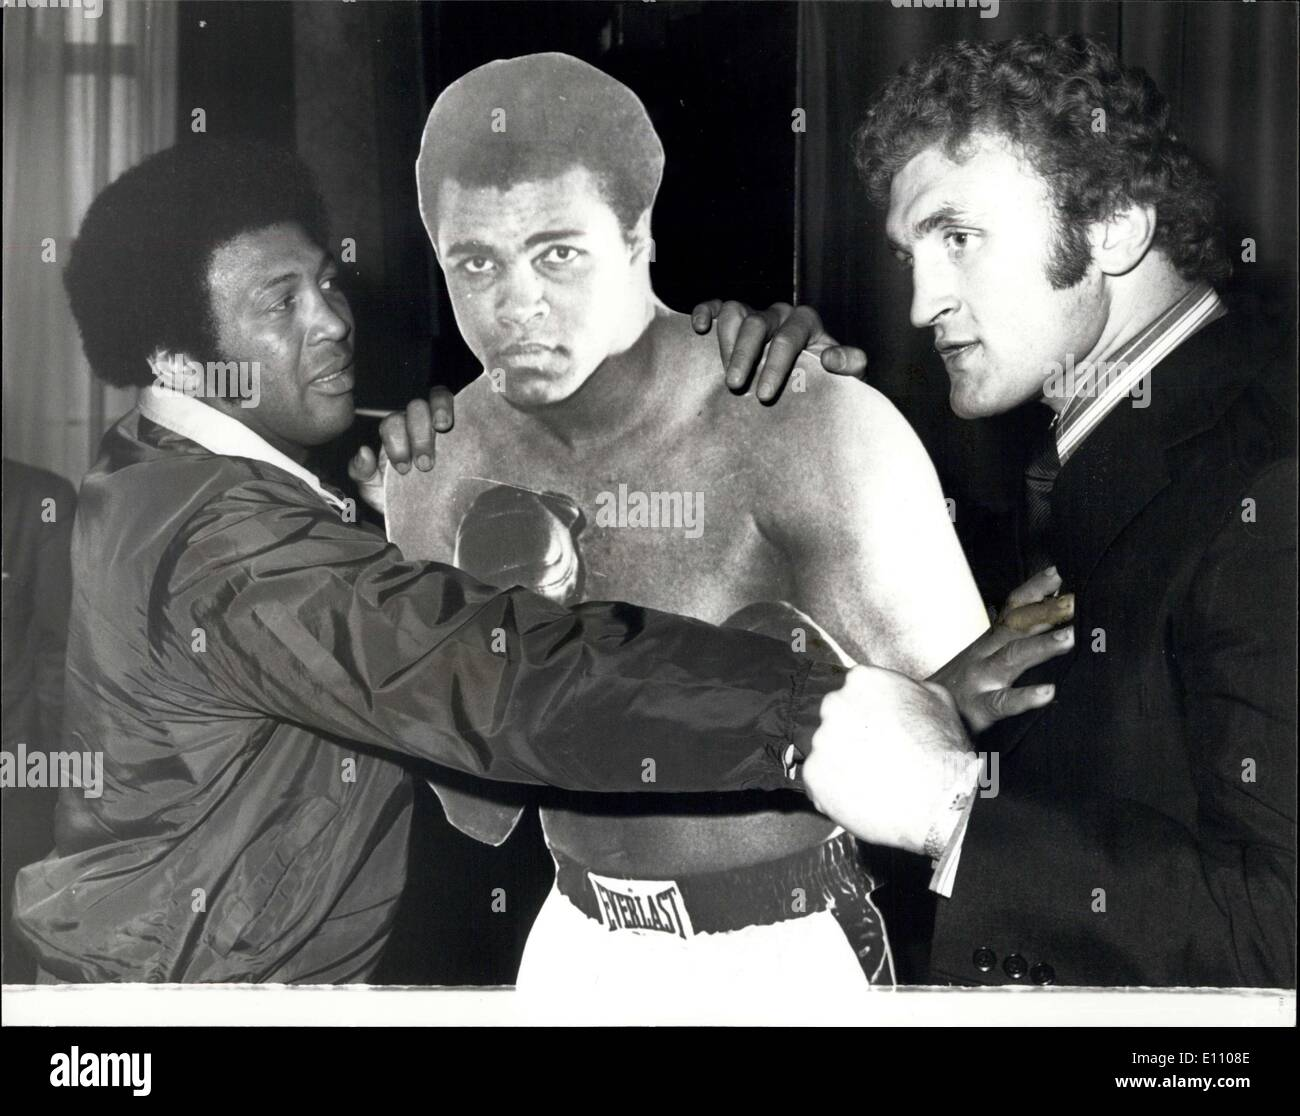 Nov. 05, 1974 - Reception for Jimmy Ellis and Joe Bugner - Jimmy Ellis, of America, former holder of the World Heavyweight boxing title, and Joe Bugner, European title holder, who fight at Wembley next Tuesday, today attended a reception at the Sportsman's Club, Tettenham COurt Road, London, Photo Shows:- Jimmy Ellis Holds out a restraining hand to Joe Bugner, as they stand beside a life size portrait of the world champion, Muhammed Ali, today. - Stock Image